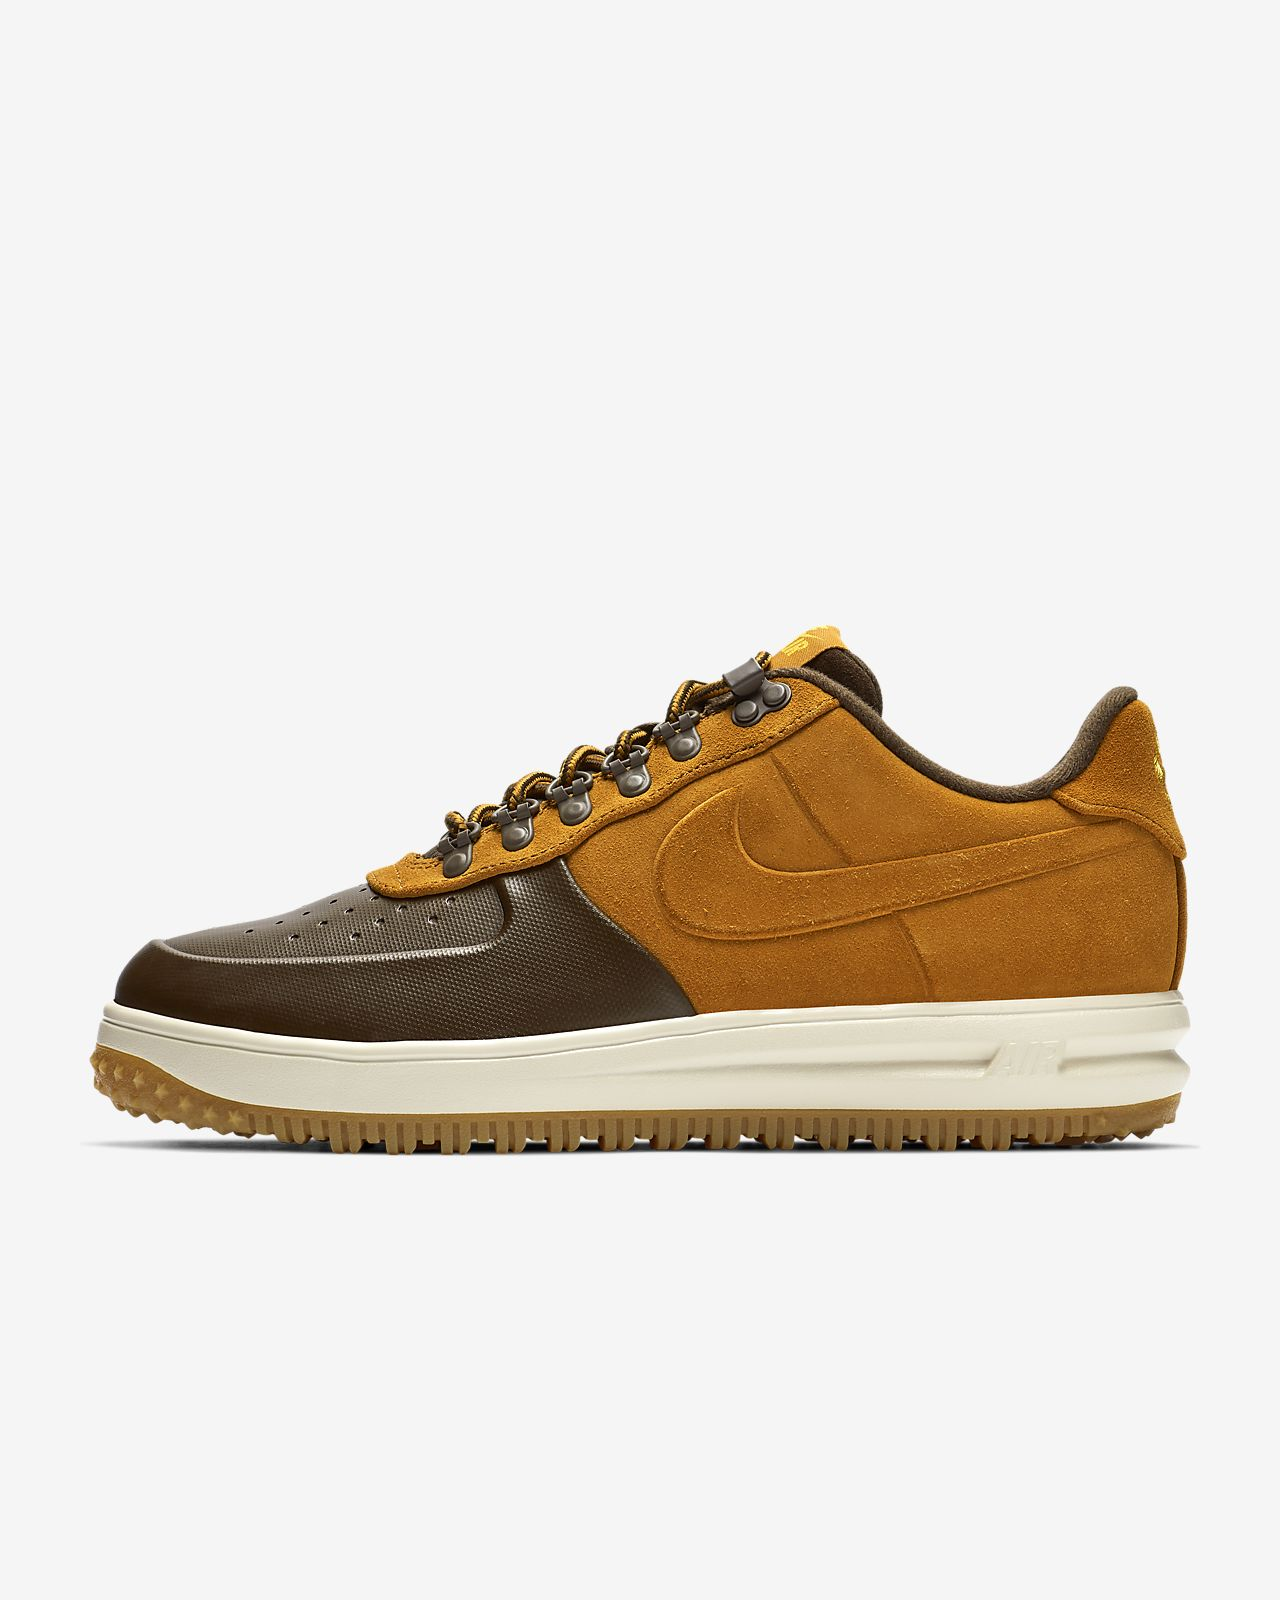 Nike Lunar Force 1 Duckboot Low Men's Shoe